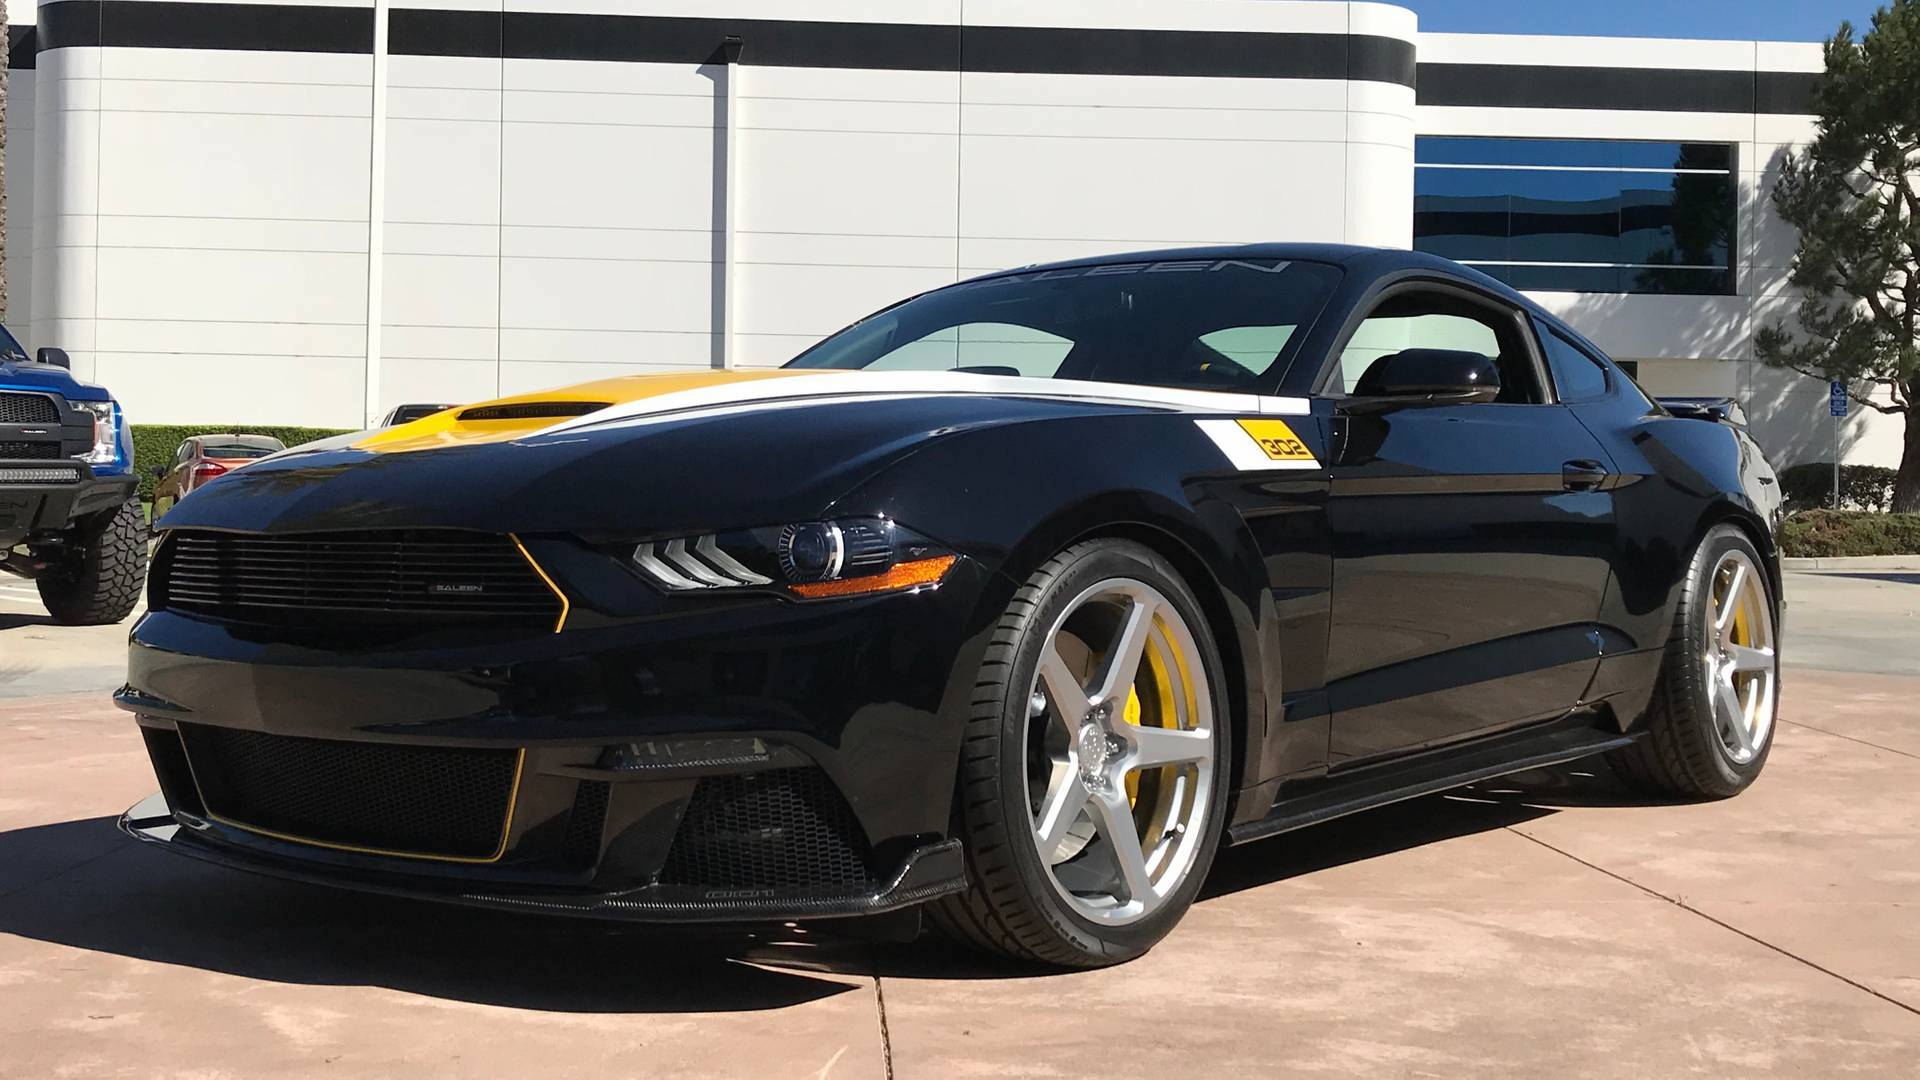 saleen celebrates 35 years with commemorative 2019 mustang. Black Bedroom Furniture Sets. Home Design Ideas